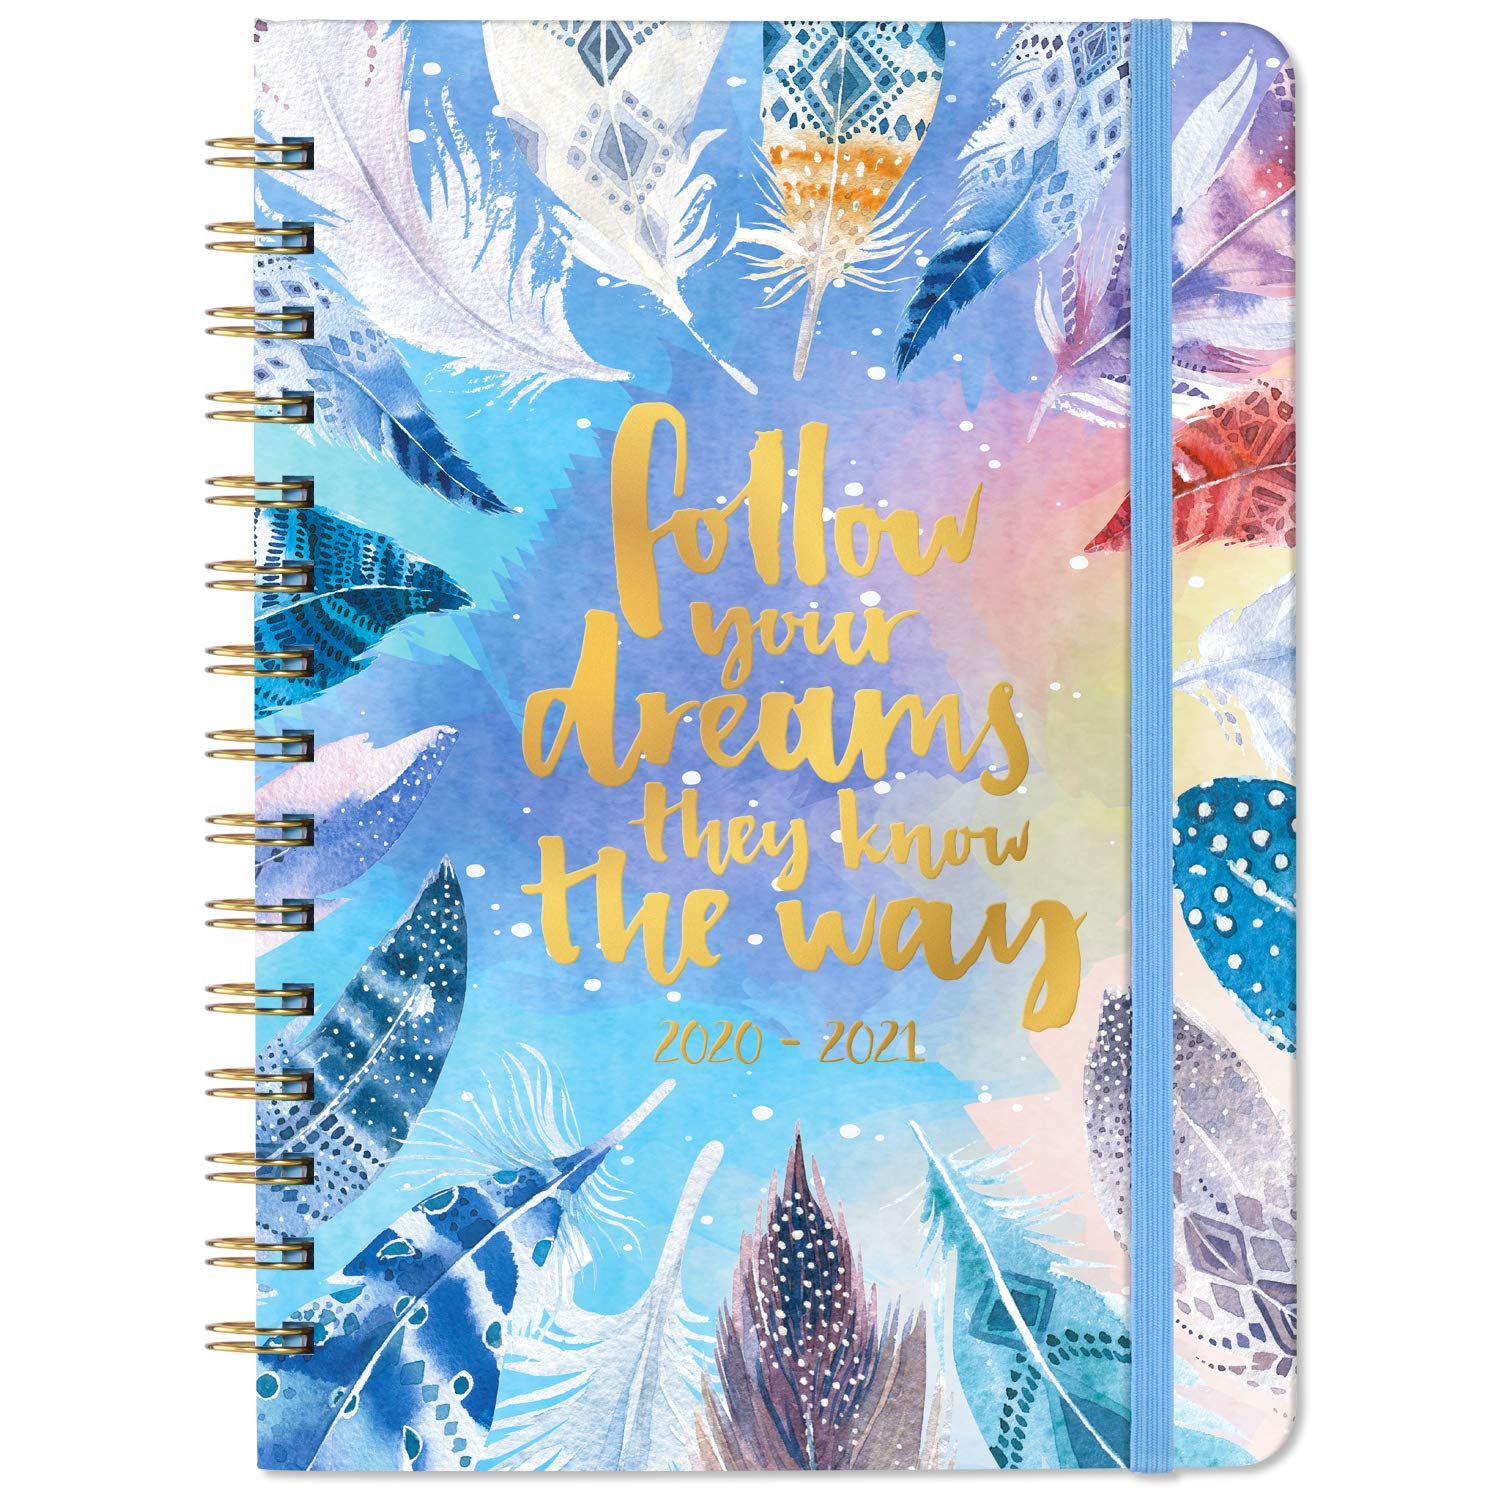 """2020-2021 Planner - Acdemic Weekly & Monthly Planner with Tabs, 6.3"""" x 8.4"""", Hardcover with Back Pocket + Thick Paper + Banded + Twin-Wire Binding + Inspirational Quotes - Watercolor Feathers"""